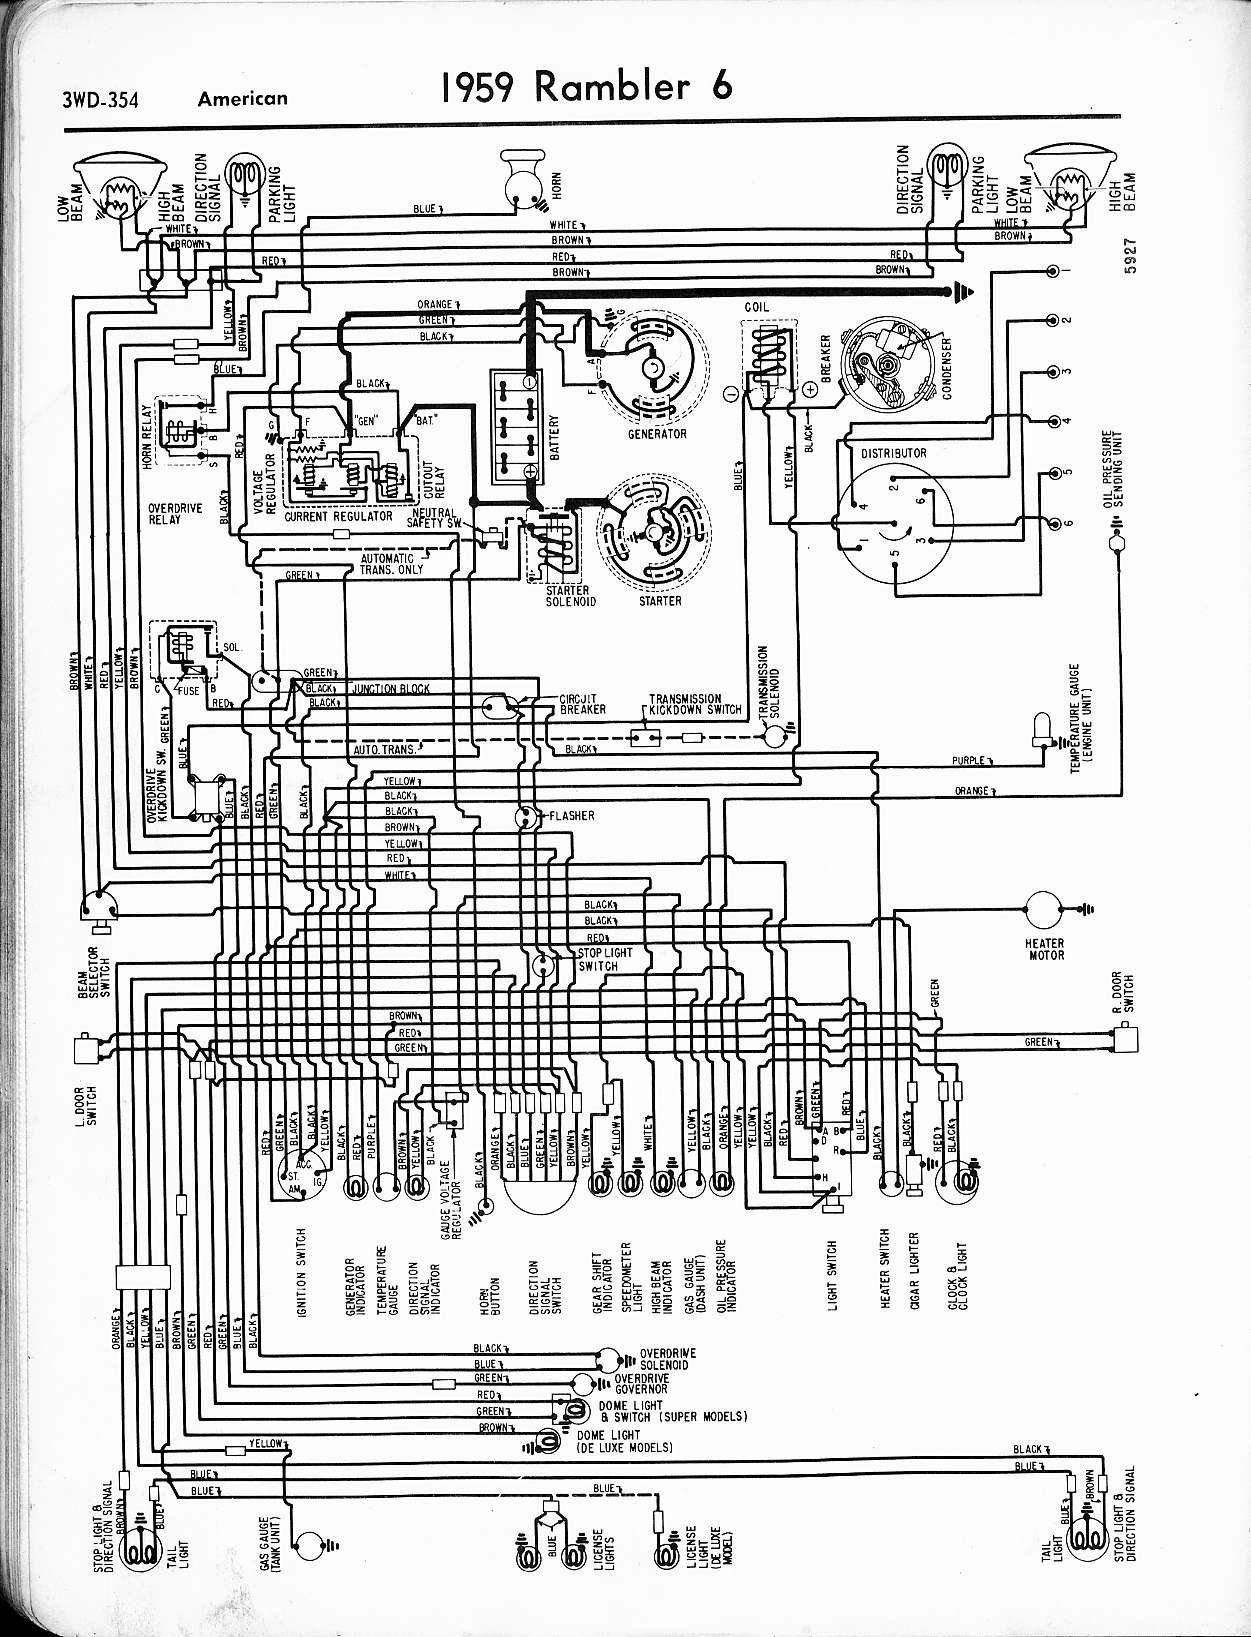 rambler wiring diagrams the old car manual project rh oldcarmanualproject com 1971 AMC Rebel 1968 AMC Rebel SST